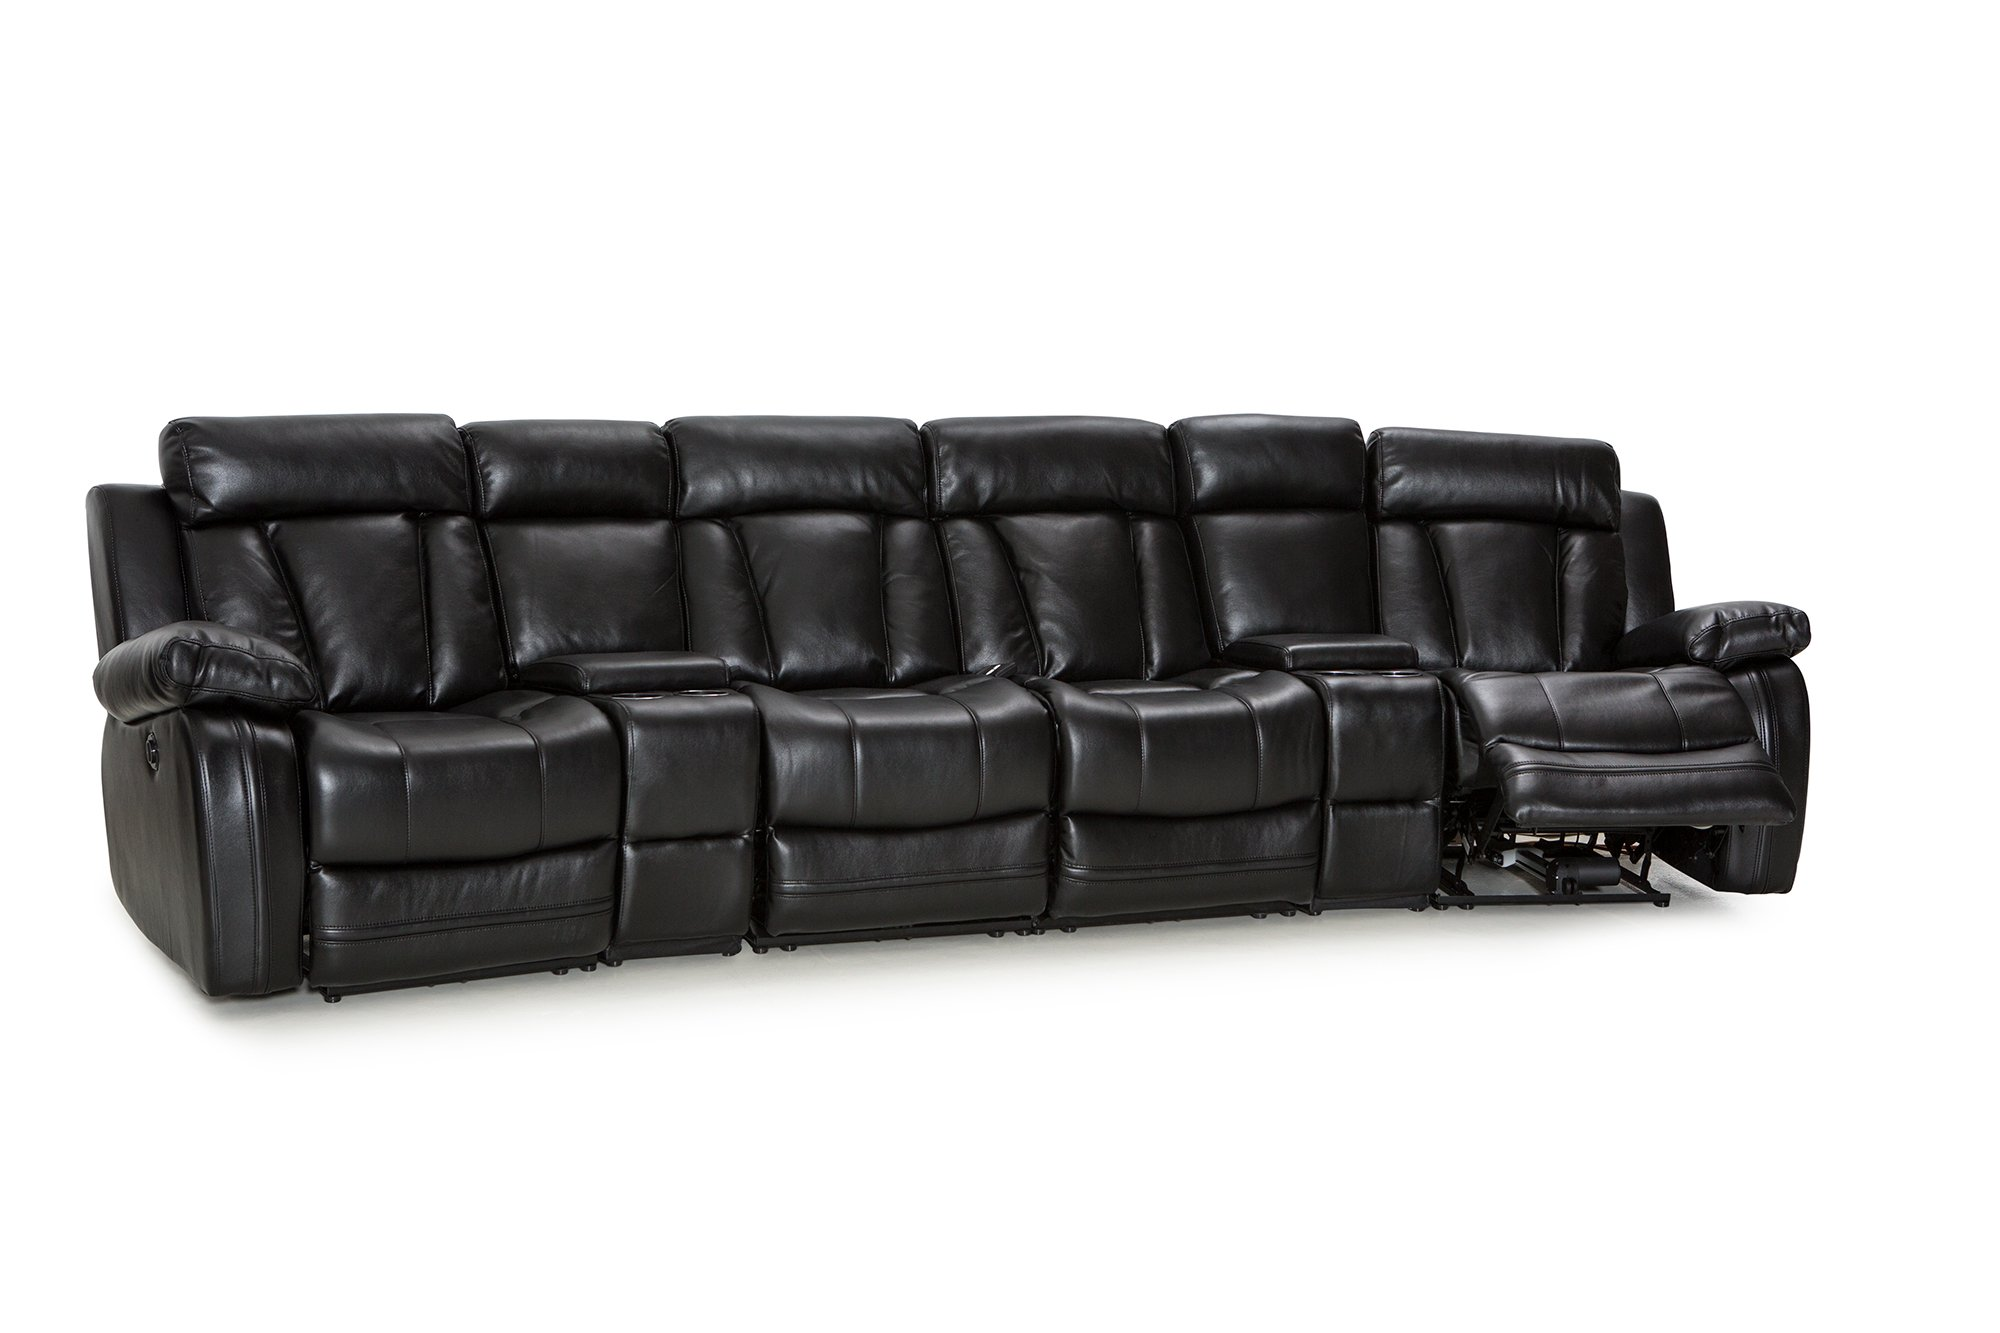 Klaussner Atticus Home Theater Seating Power Reclinable Bonded Leather Row of 4 Loveseat with Storage and Cupholders Black